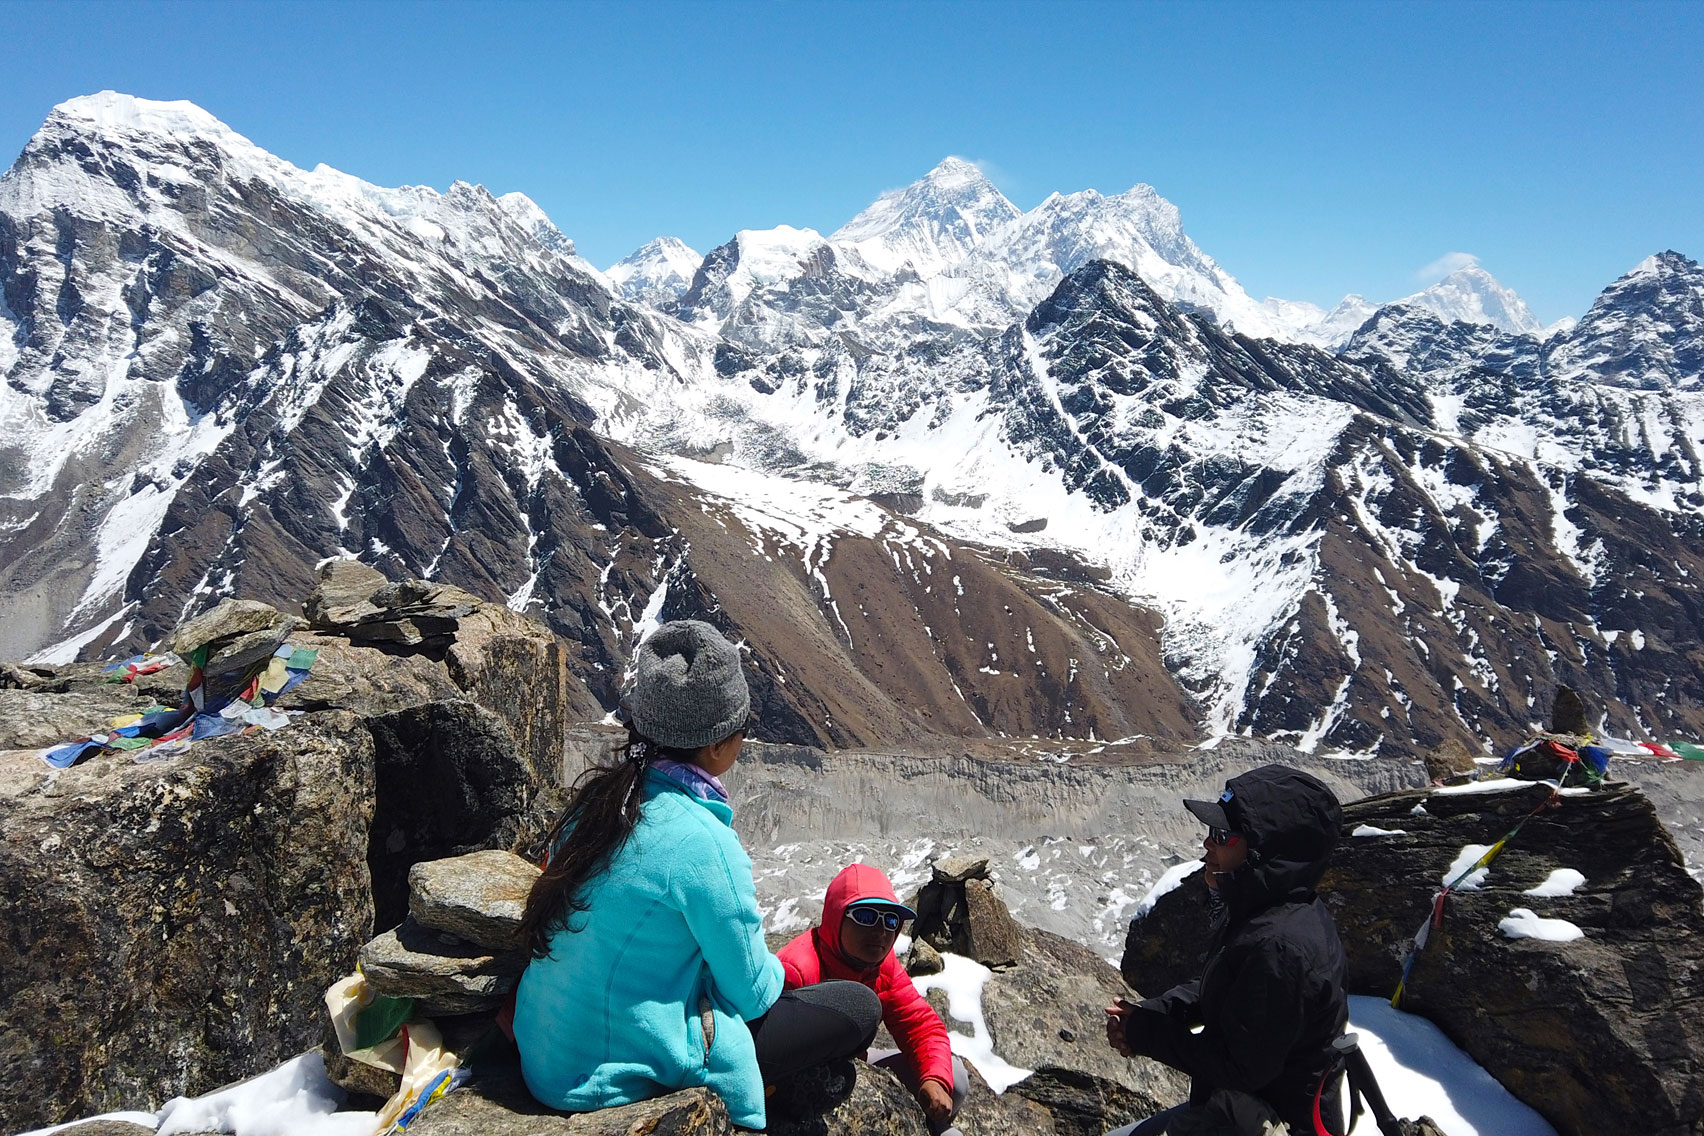 Day 9: Trek from Machermo (4410m) to Gokyo (6hrs, 4759m)